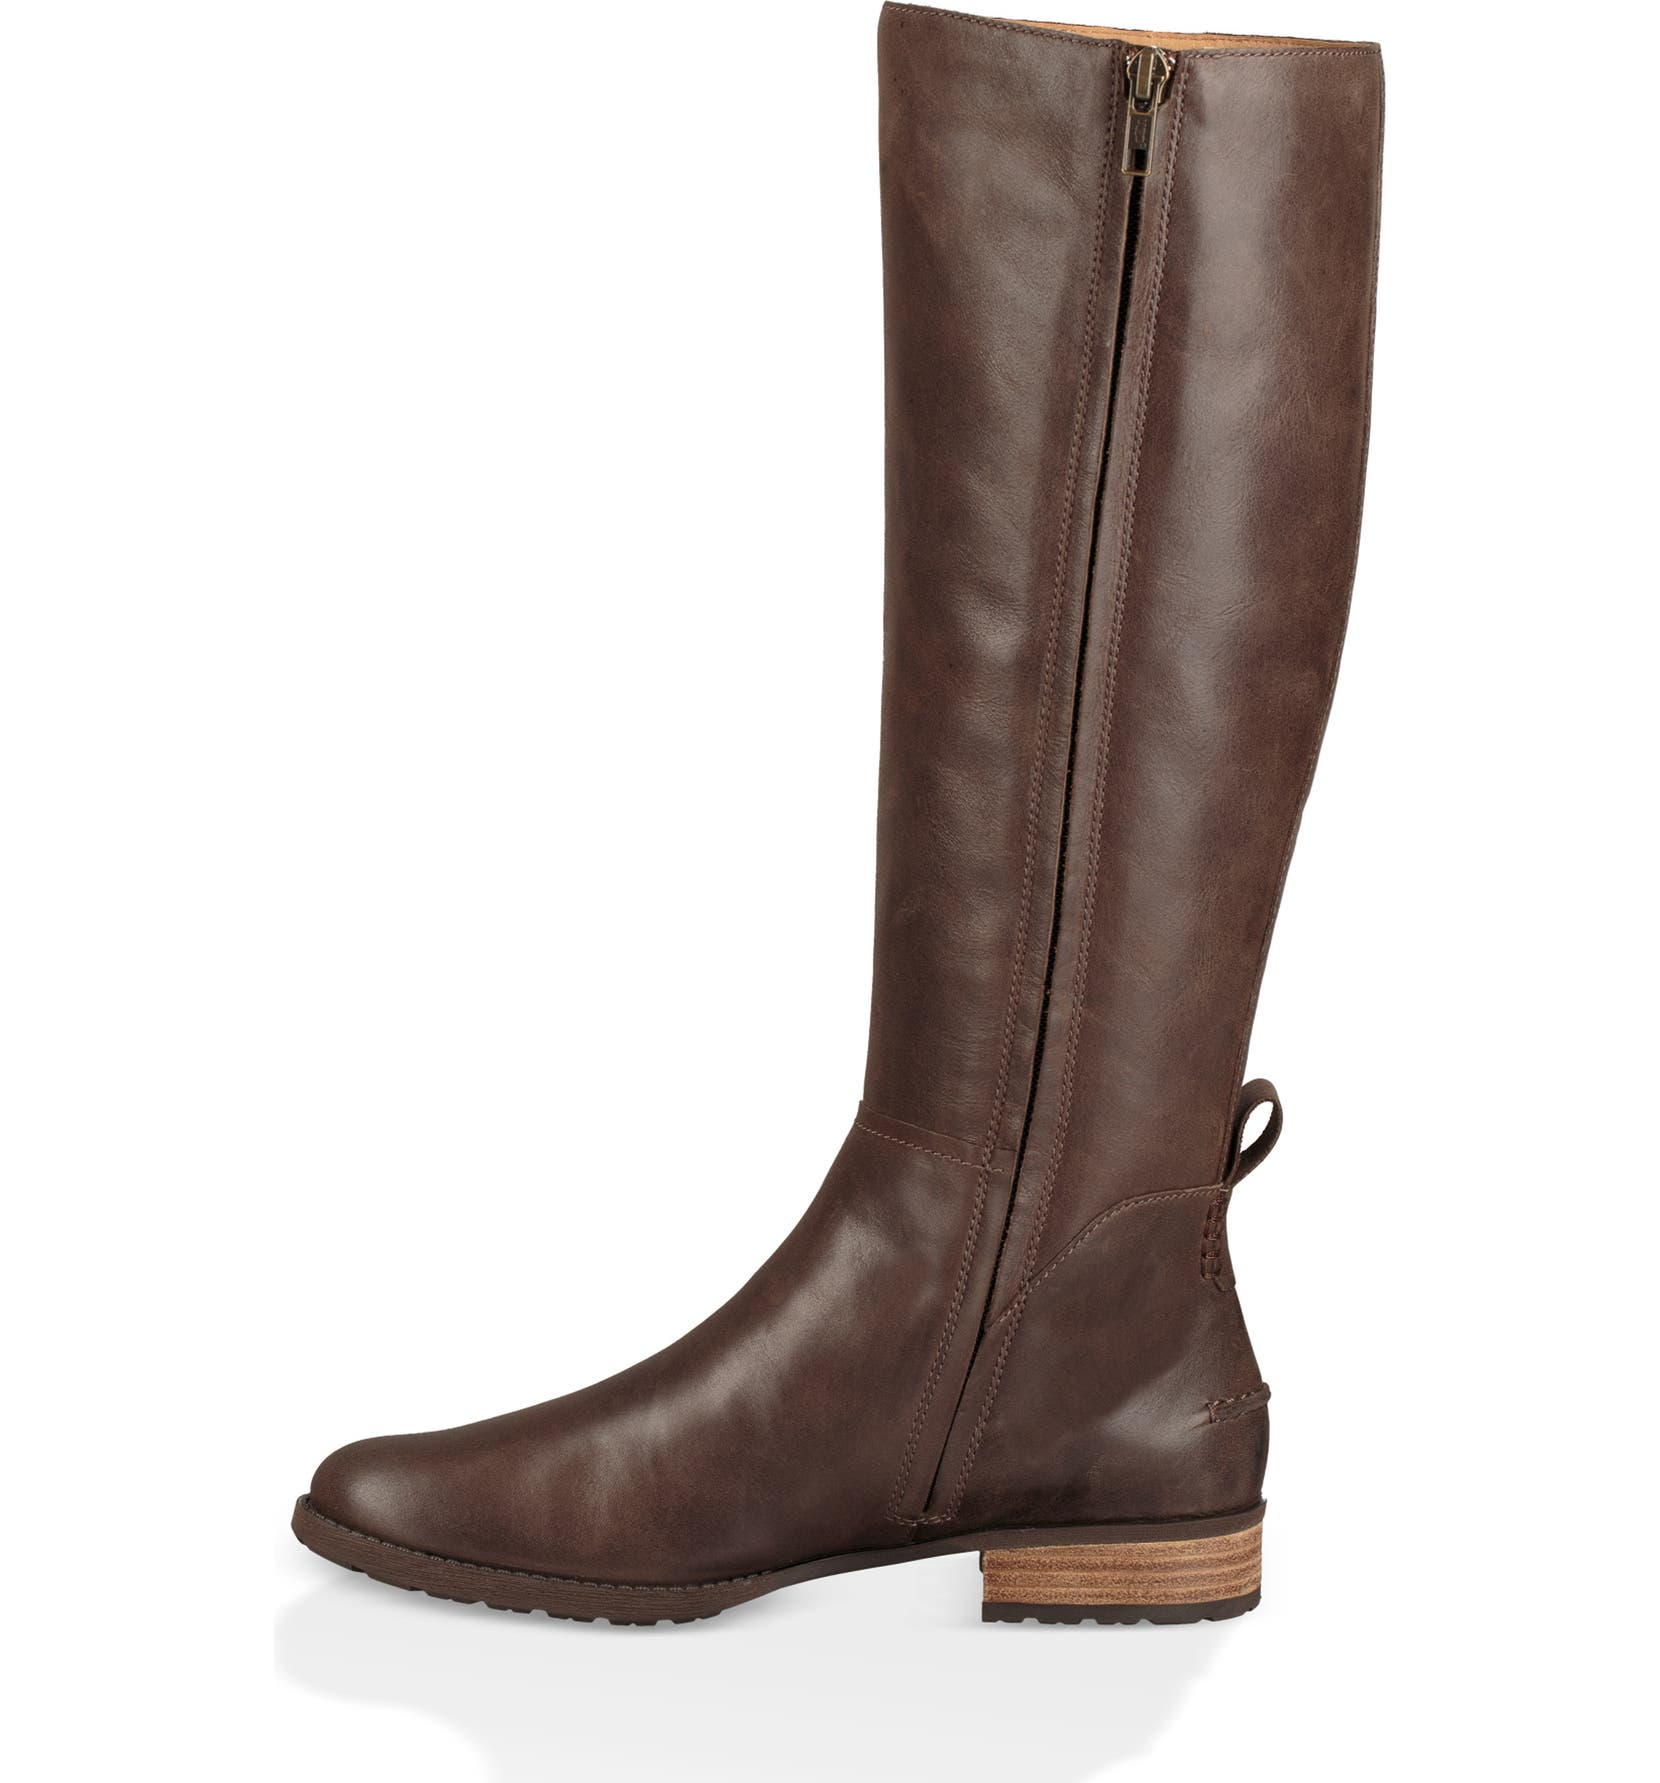 dba3af23047 Leigh Knee High Riding Boot